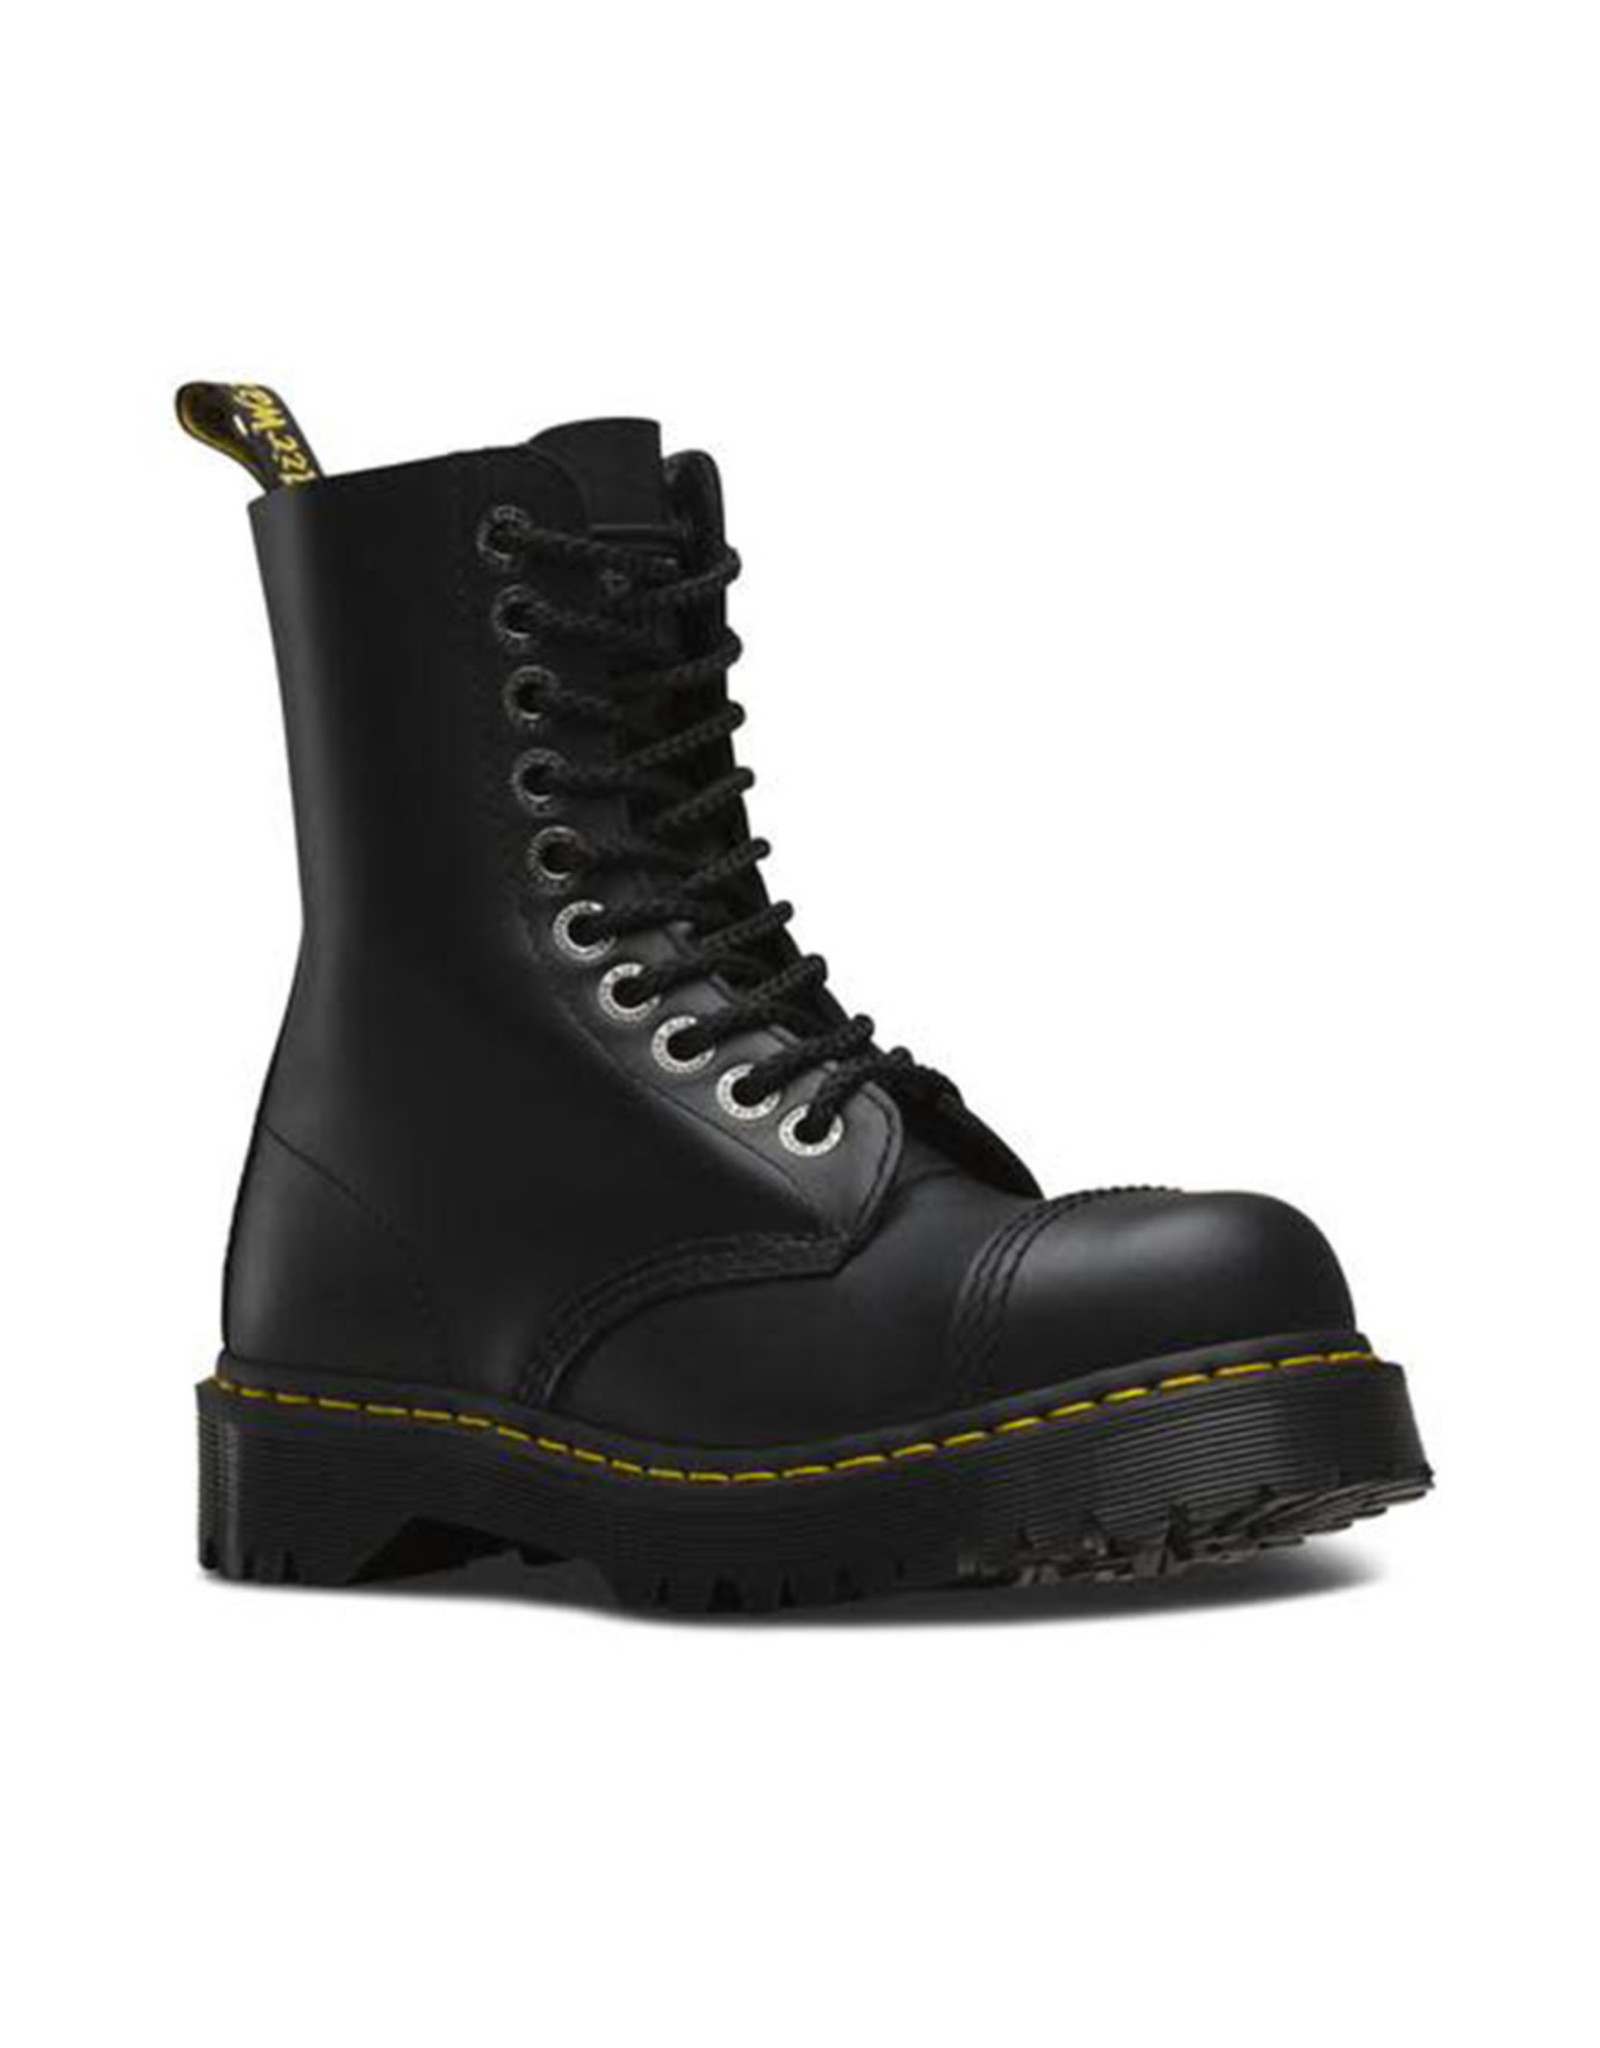 DR. MARTENS 8761 BXB BOOT CAP BLACK FINE HAIRCELL 1014B-R10966001